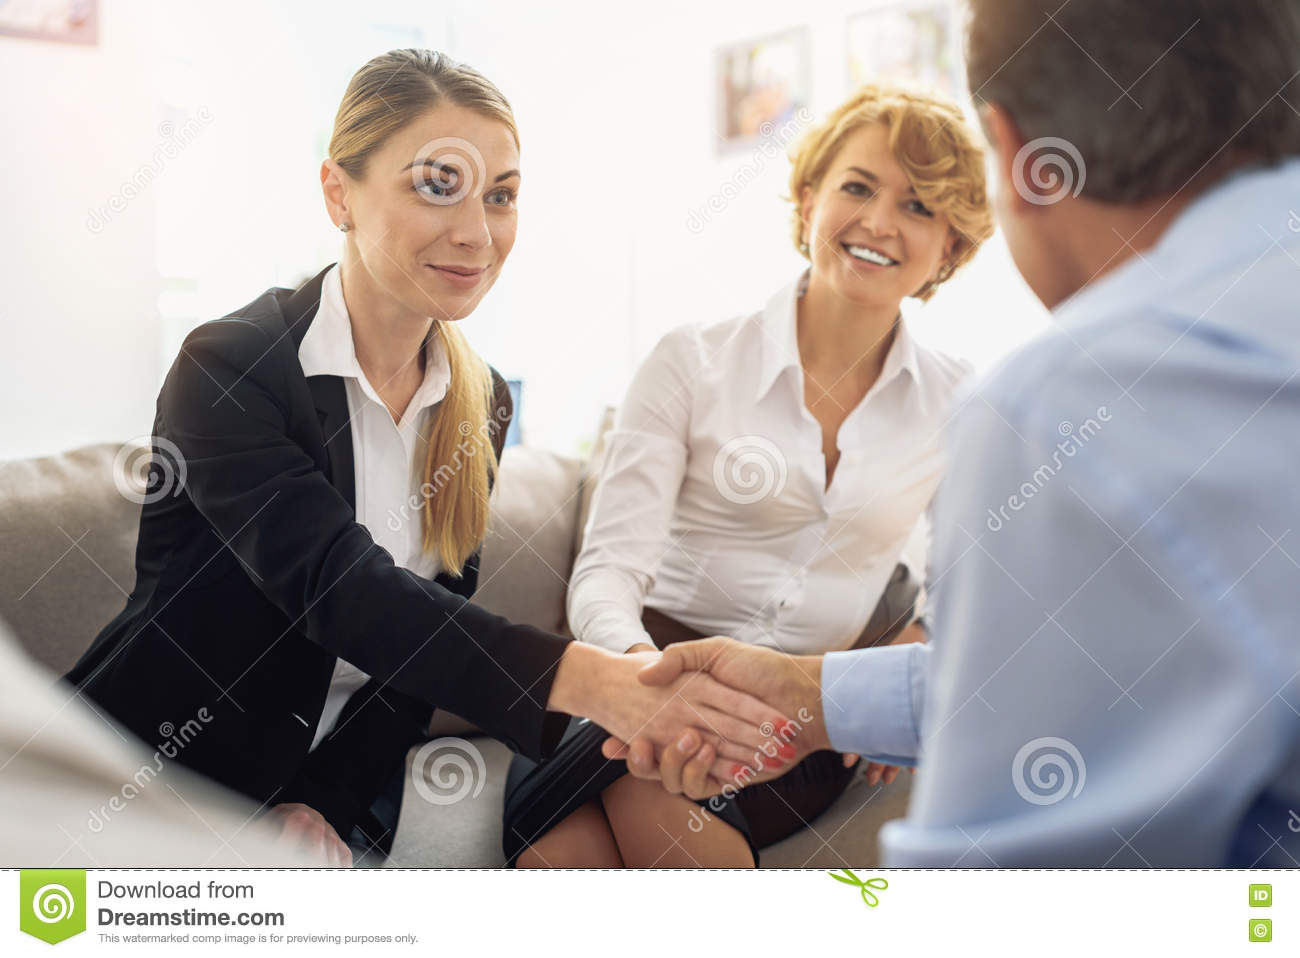 Business people handshake greeting deal at work photo free download - I Am Glad To Work With You Happy Young Businesswoman Is Greeting Her Business Partner By Handshake